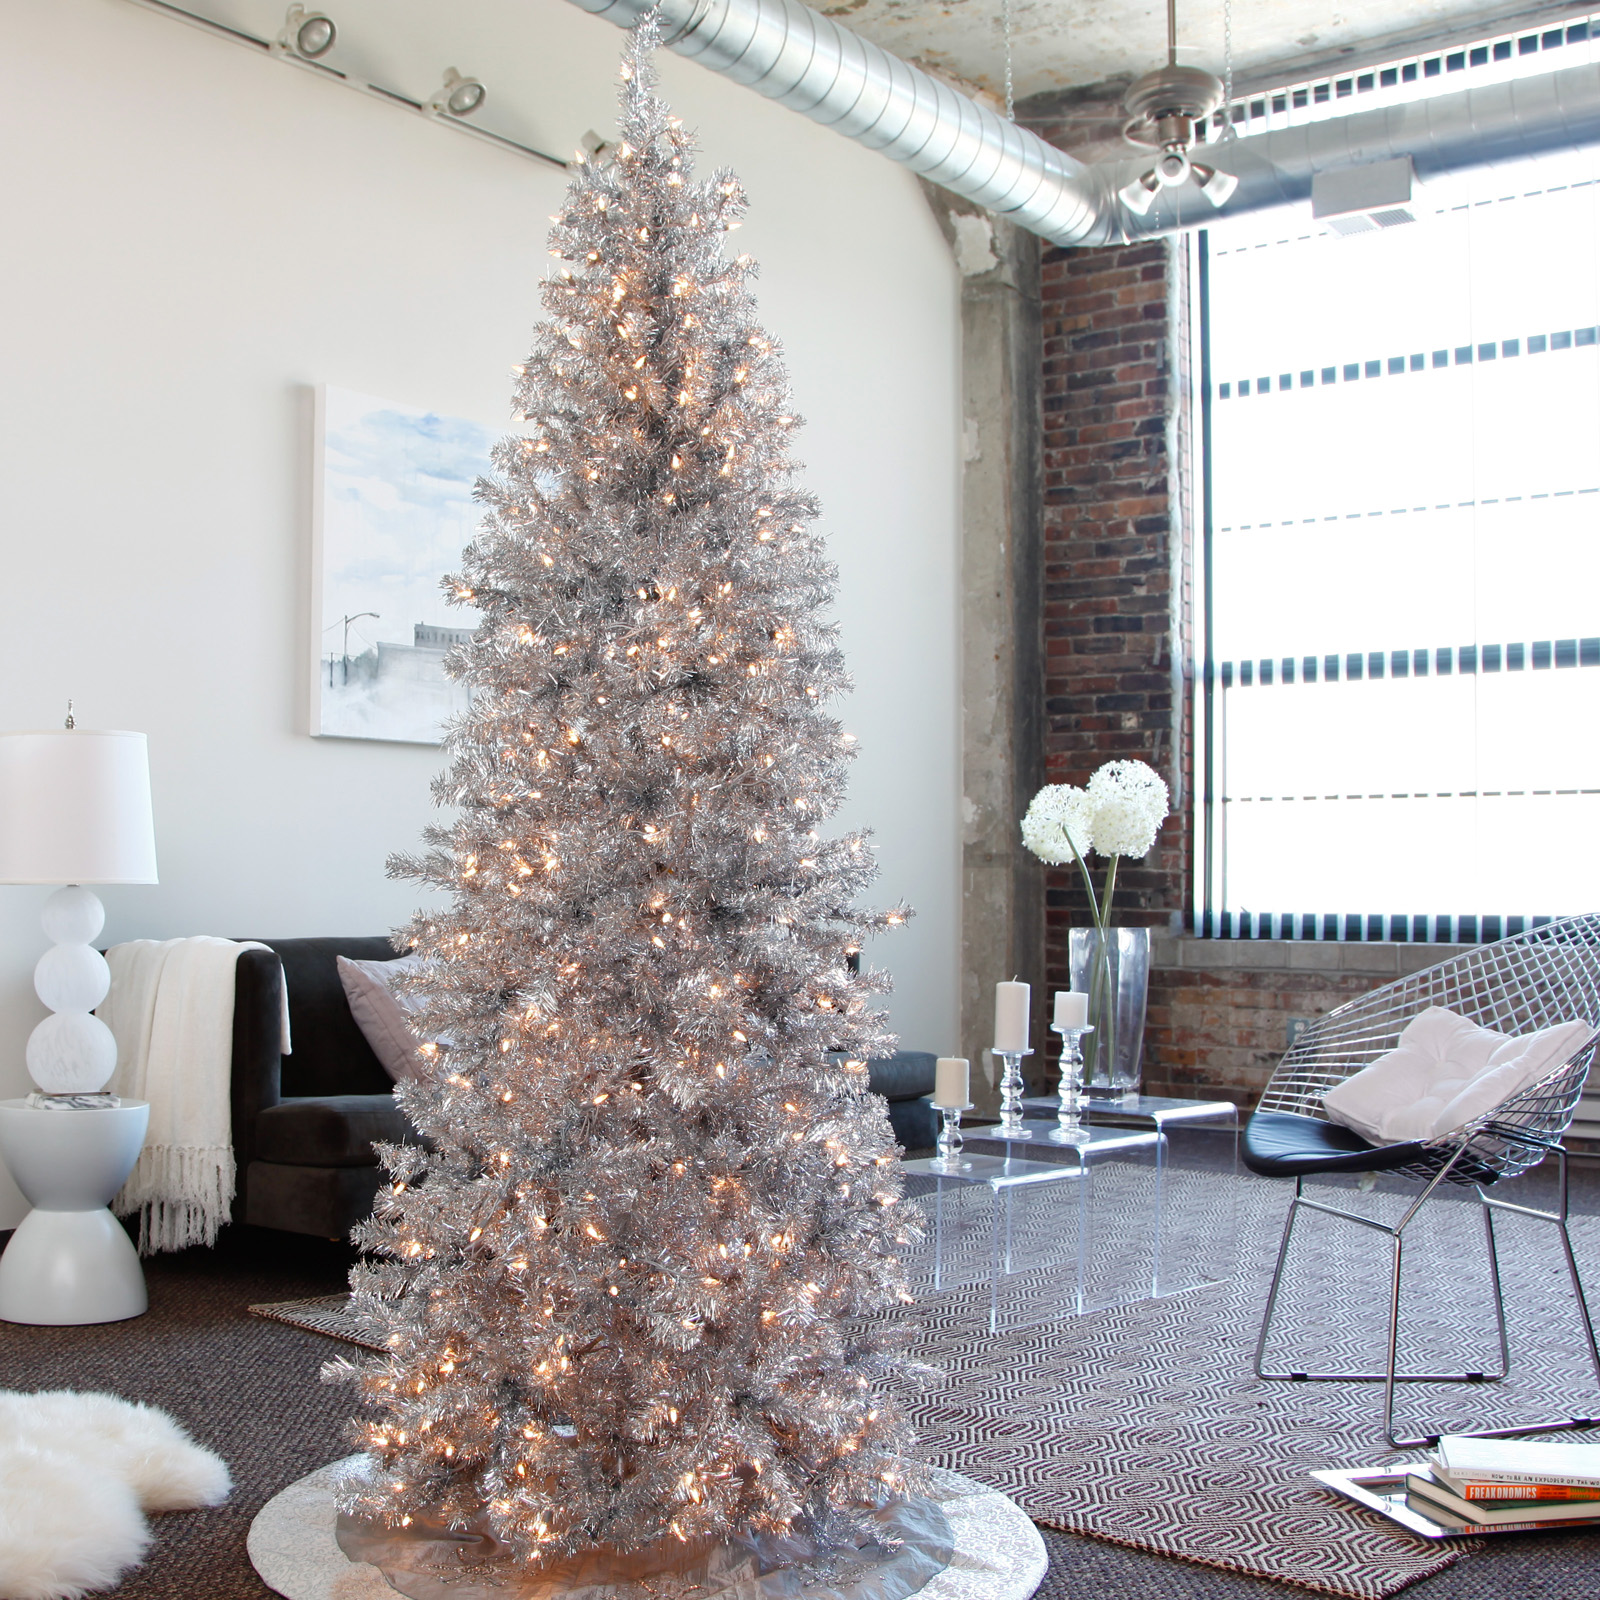 Christmas Tree With Silver Decorations: Modern Christmas Trees [18 Pic]